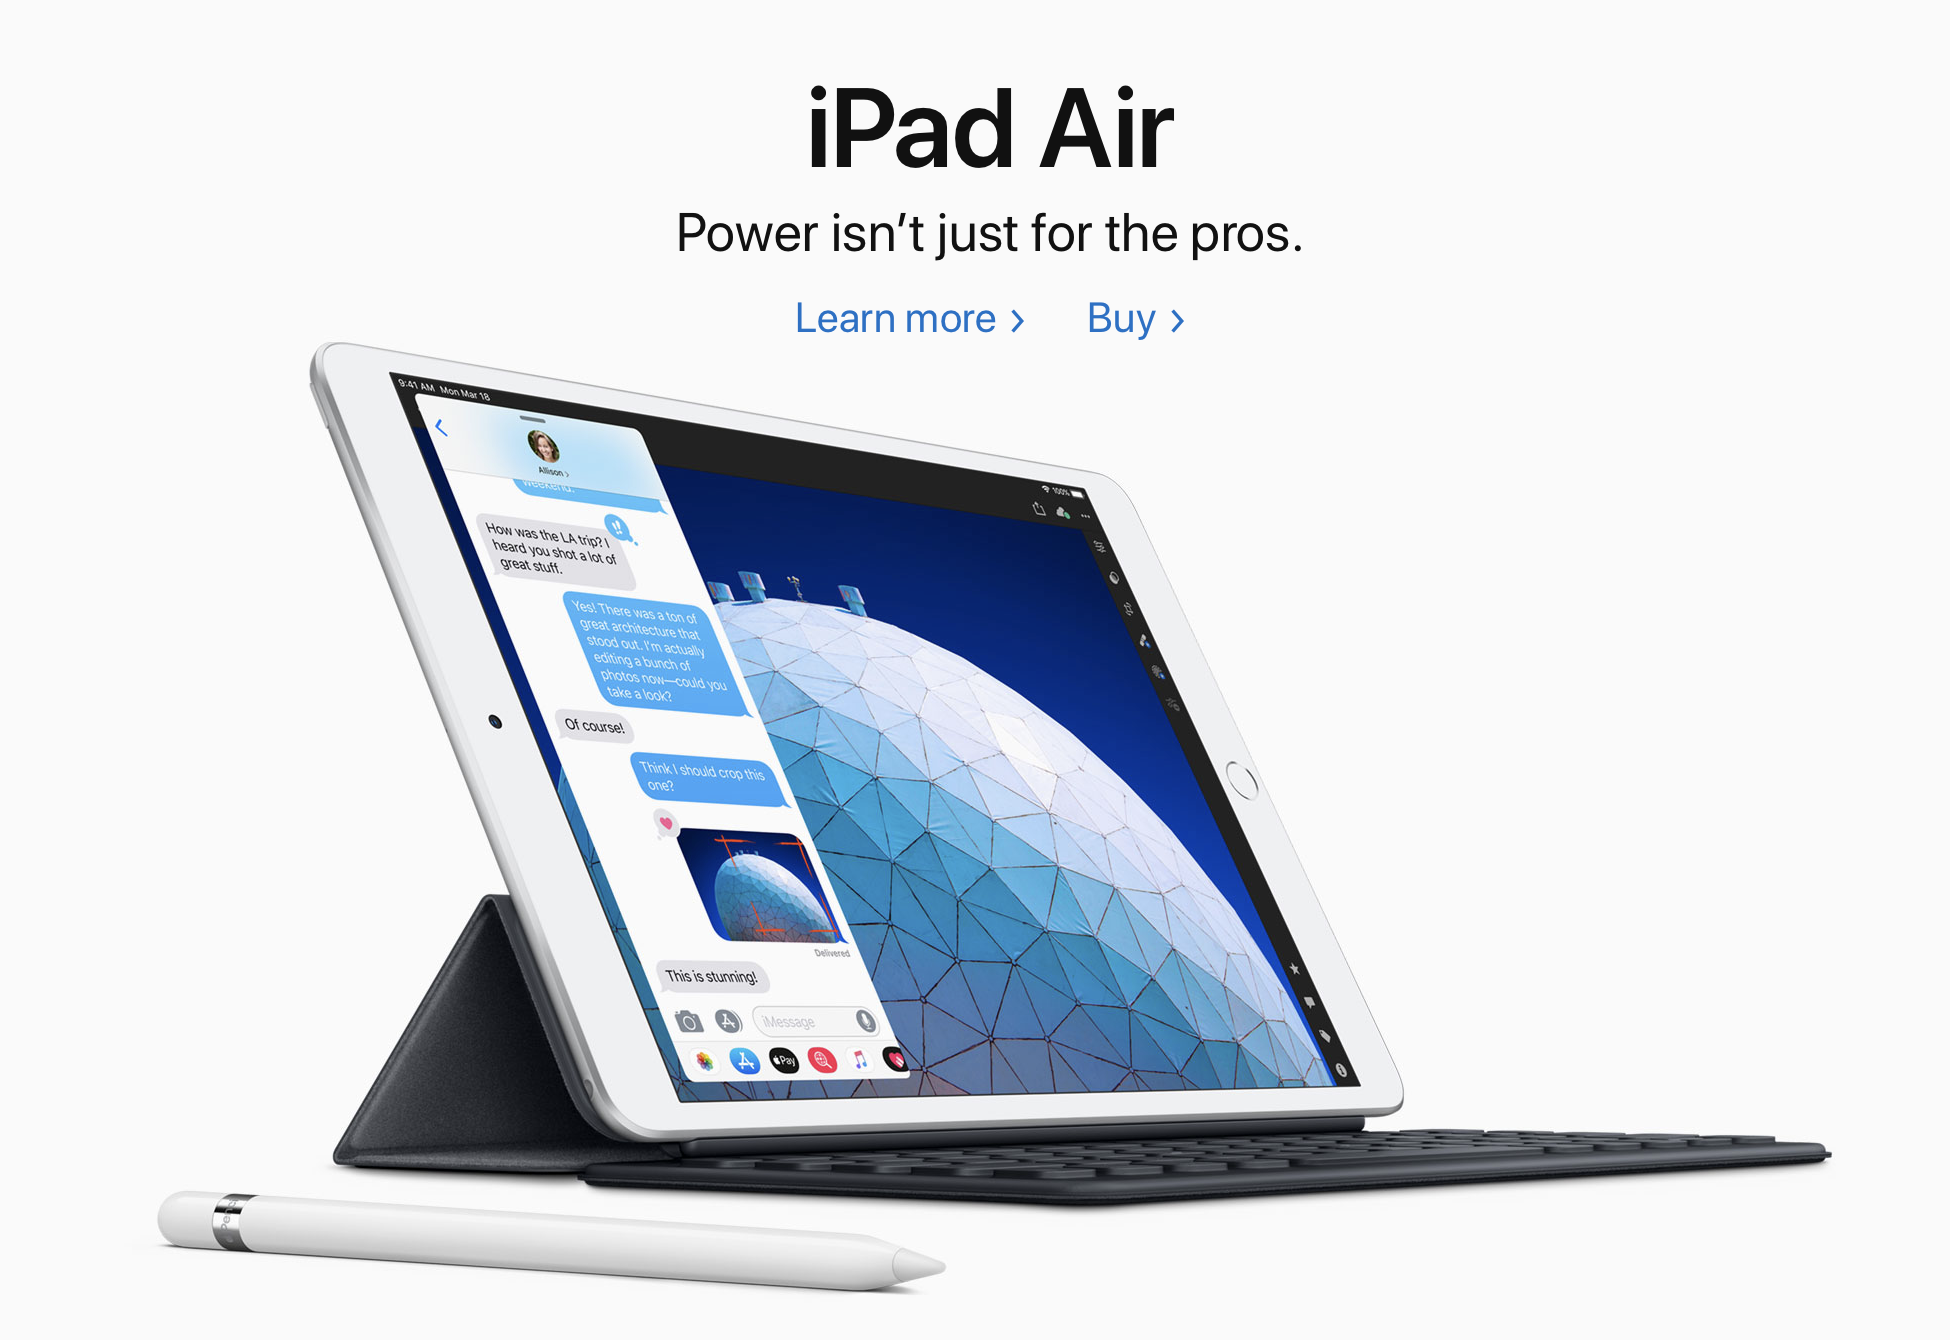 the new iPad Air